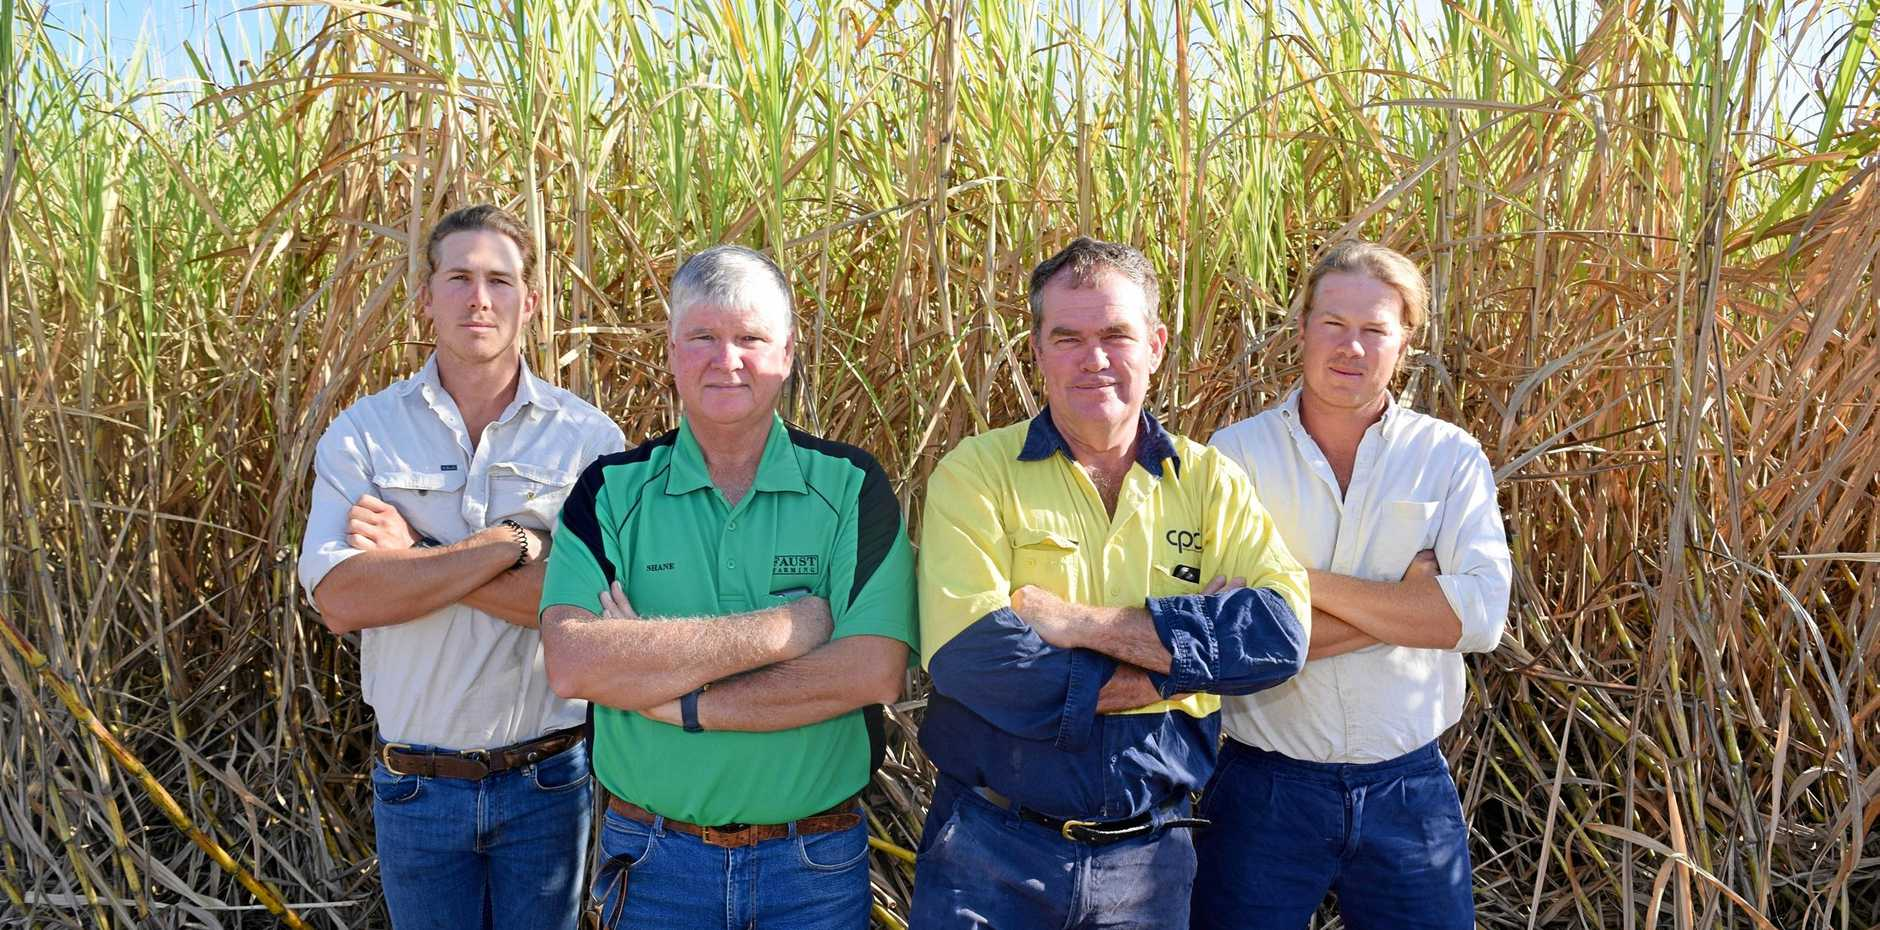 NOT HAPPY: Proserpine cane farmer Peter Faust (second from right) with (from left) son Matt Faust, farm manager Shane Butler and son Peter Faust.